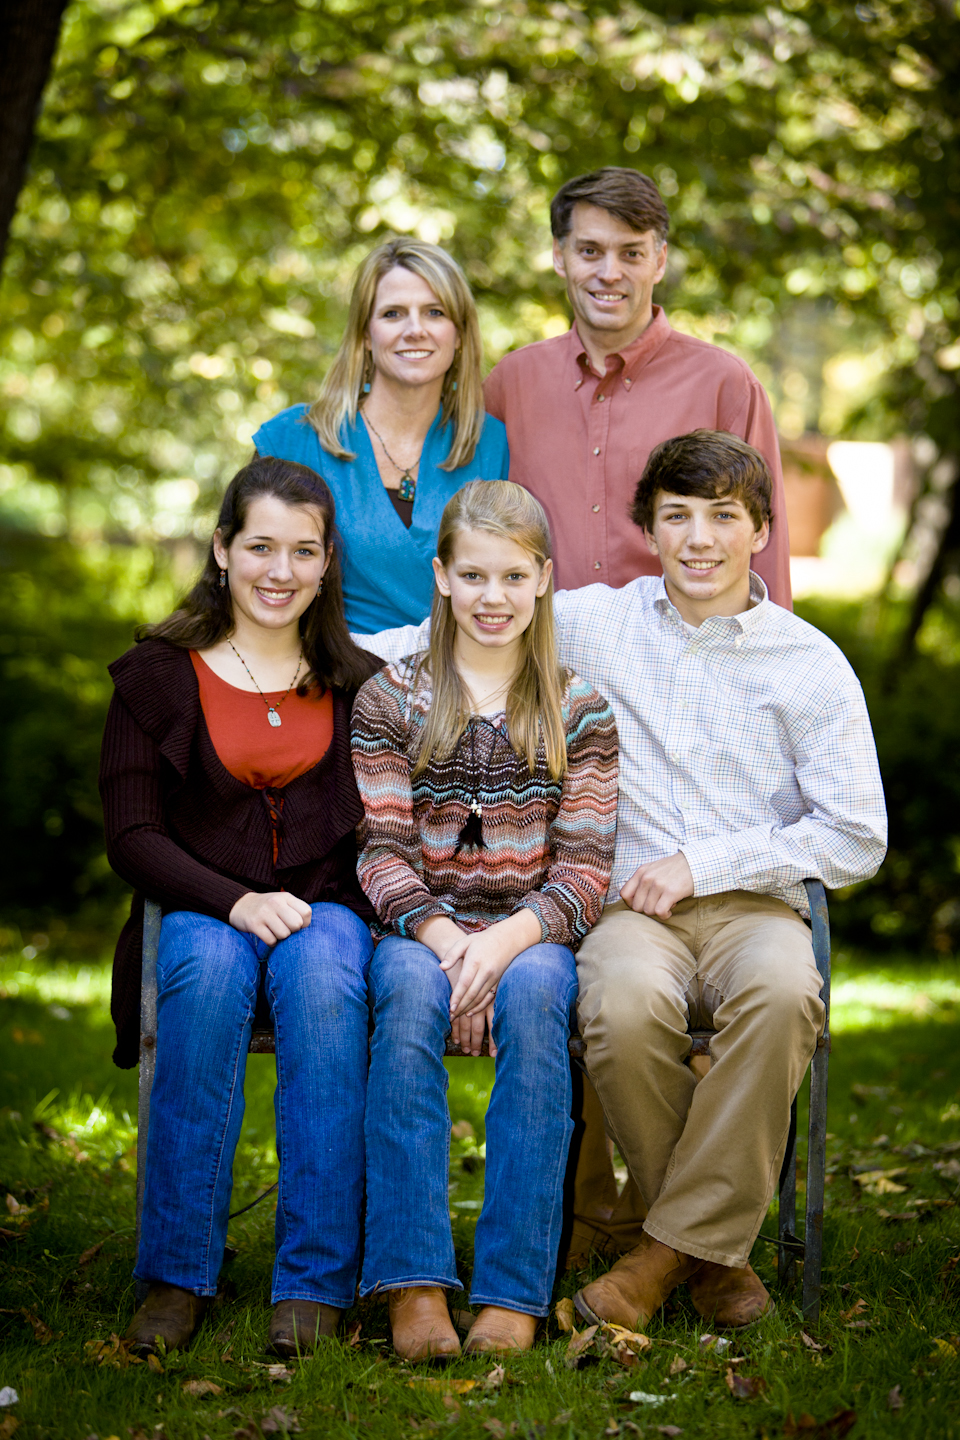 Family & Kids Portraits047.jpg